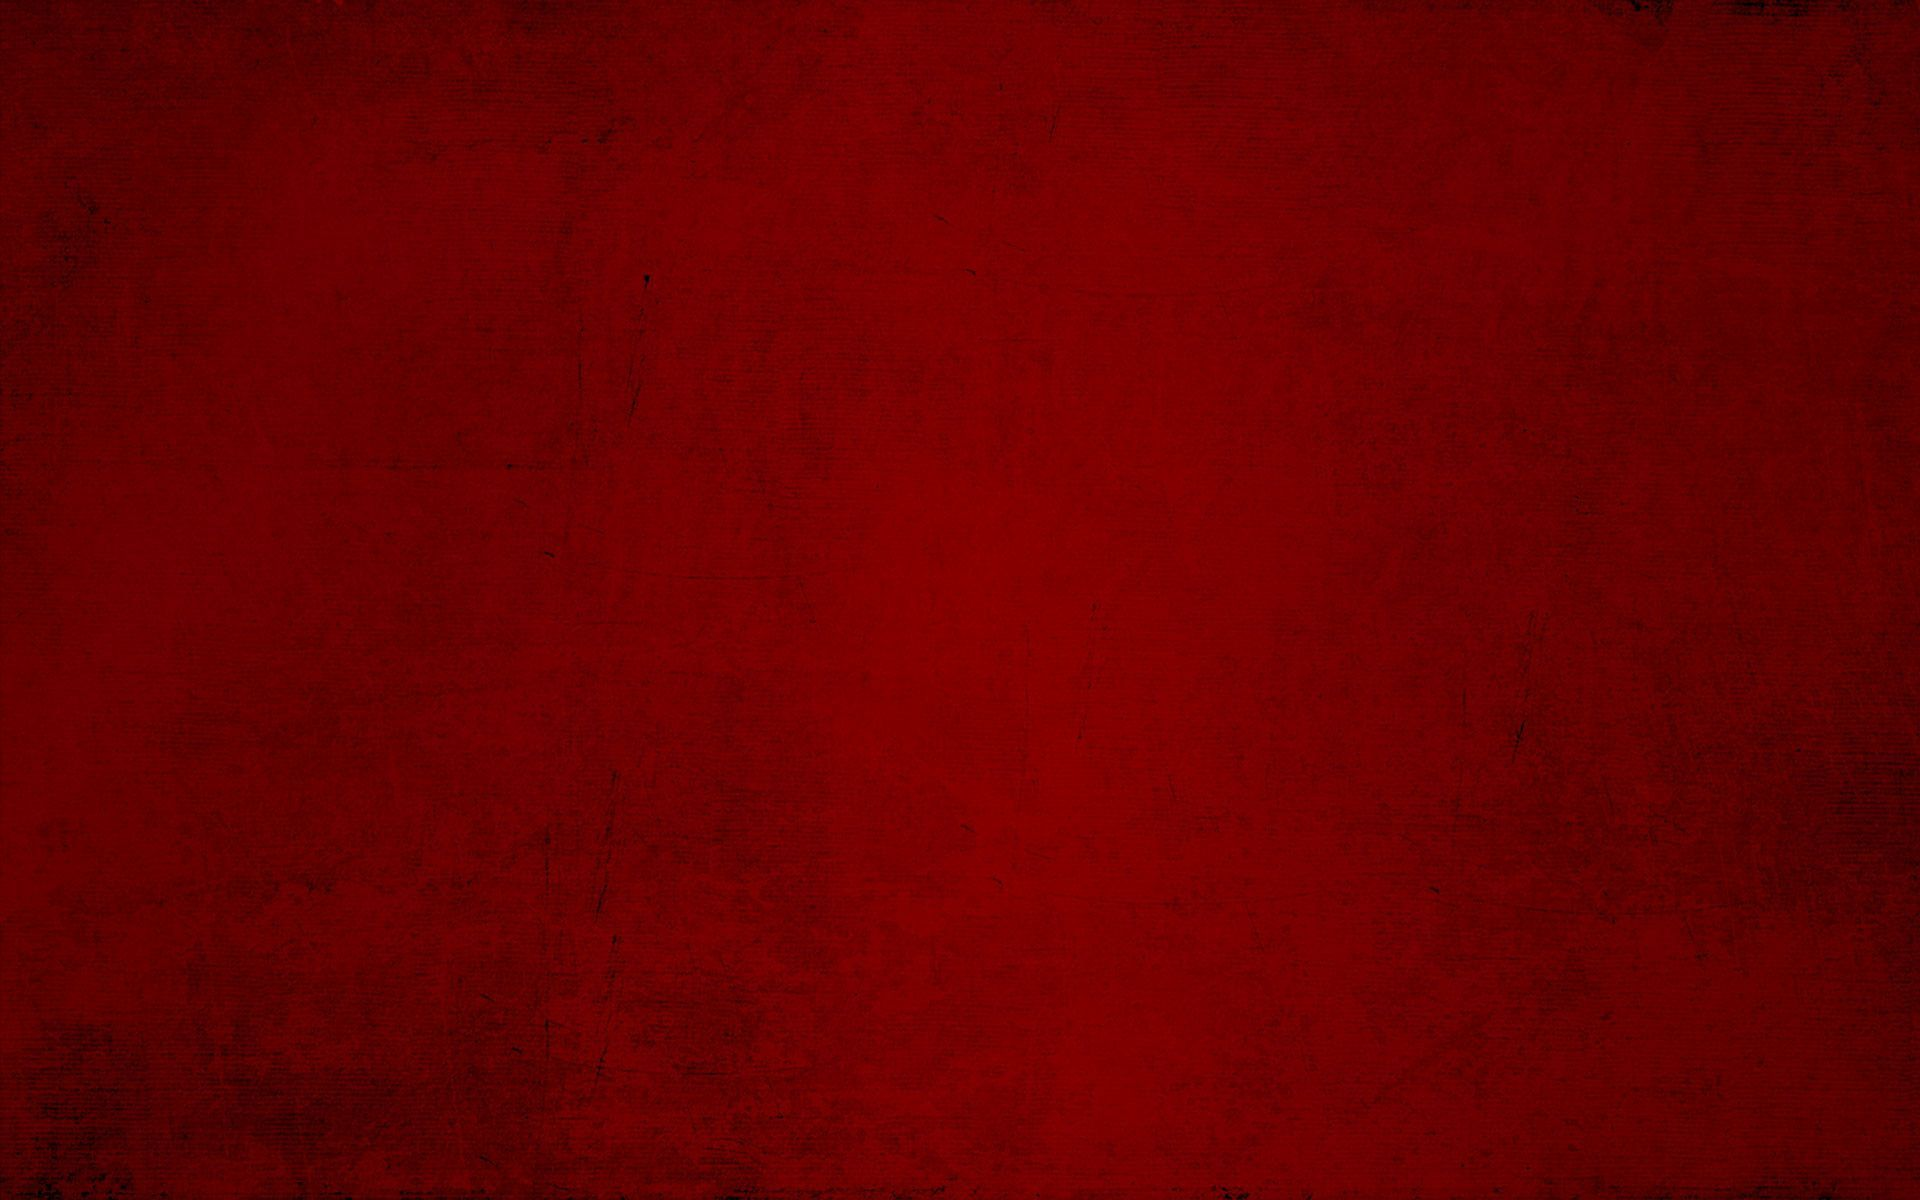 free download red velvet texture red texture wallpaper 14429 1920x1200 for your desktop mobile tablet explore 45 red velvet wallpaper red flocked damask wallpaper velvet wallpaper room ideas pink flocked wallpaper free download red velvet texture red